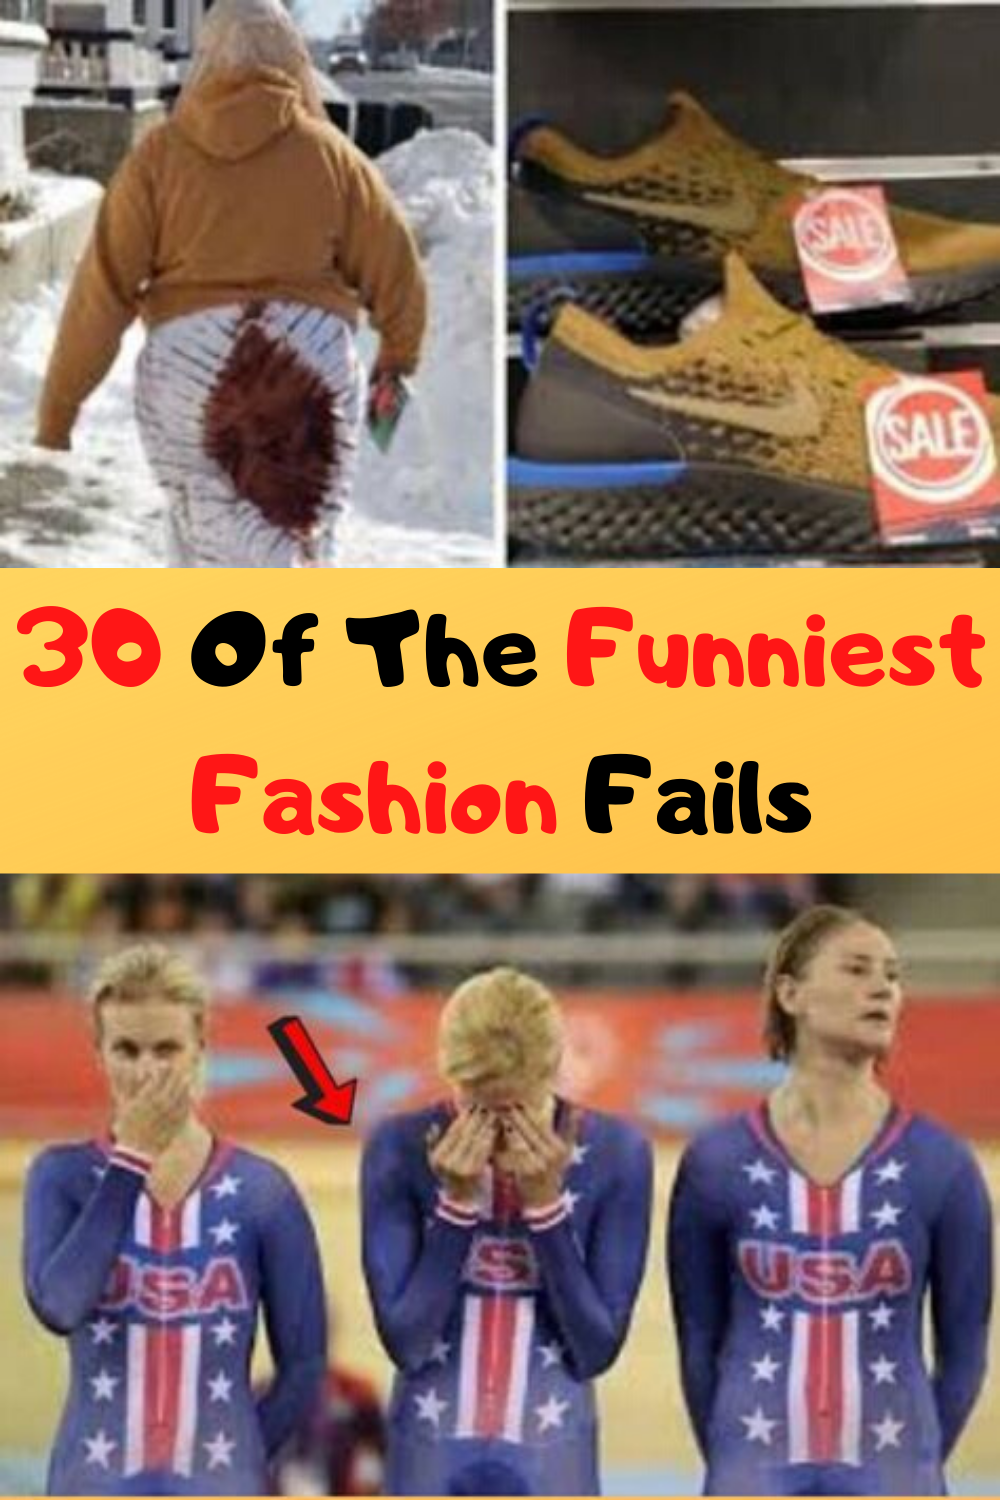 30 Of The Funniest Fashion Fails